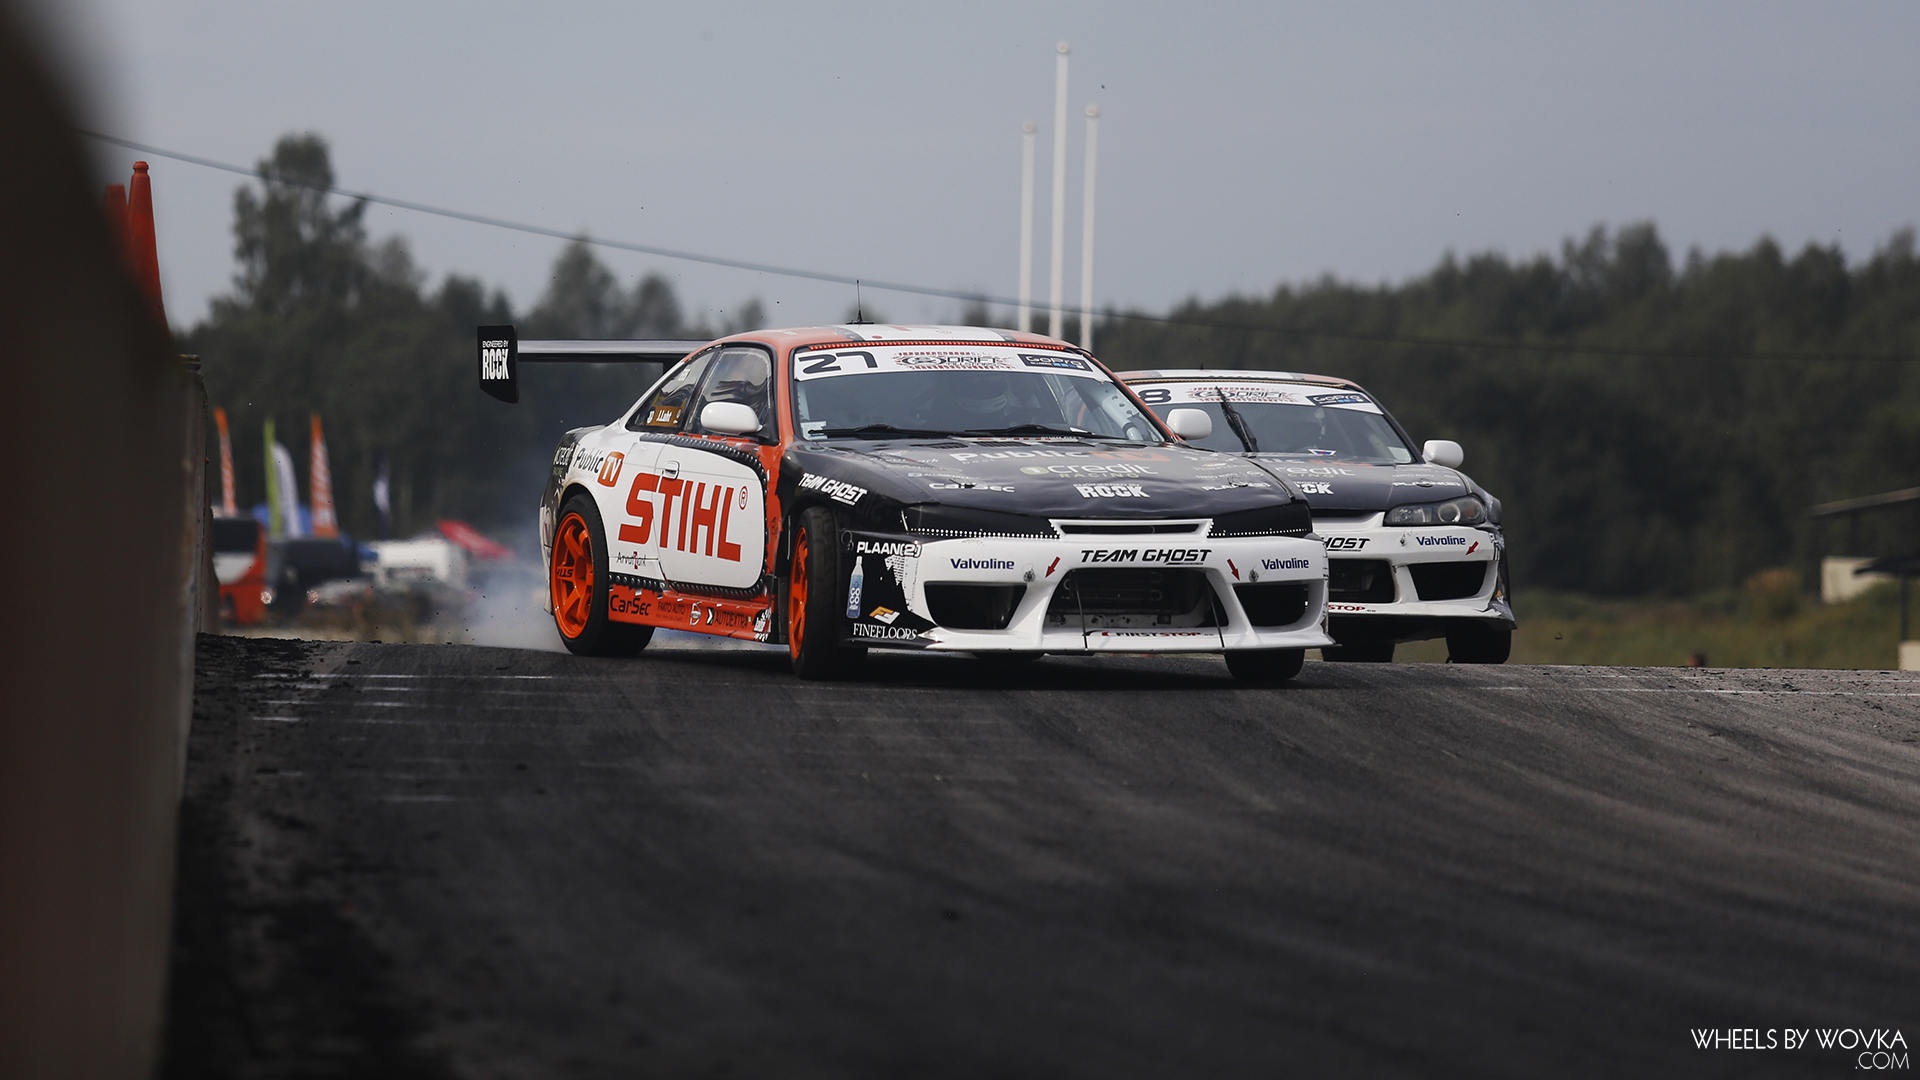 team-ghost-drift-allstars